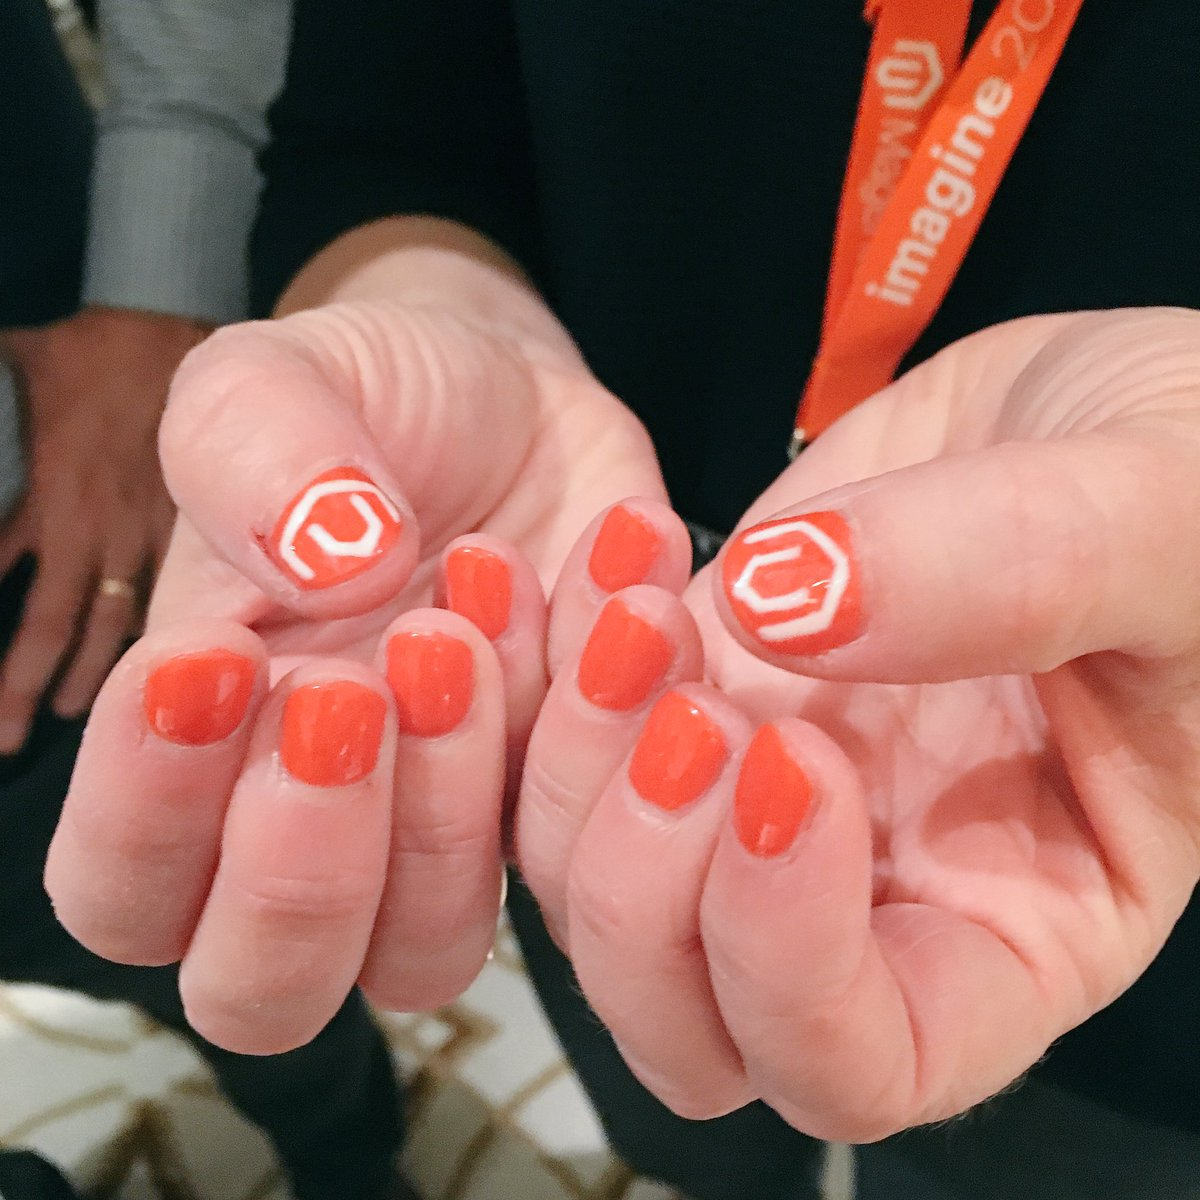 mmiller75: Loving all the @magento spirit here at #Magentoimagine! Show me your Magento! @WynnLasVegas @Veselina_Buie https://t.co/2R8rCnGofd